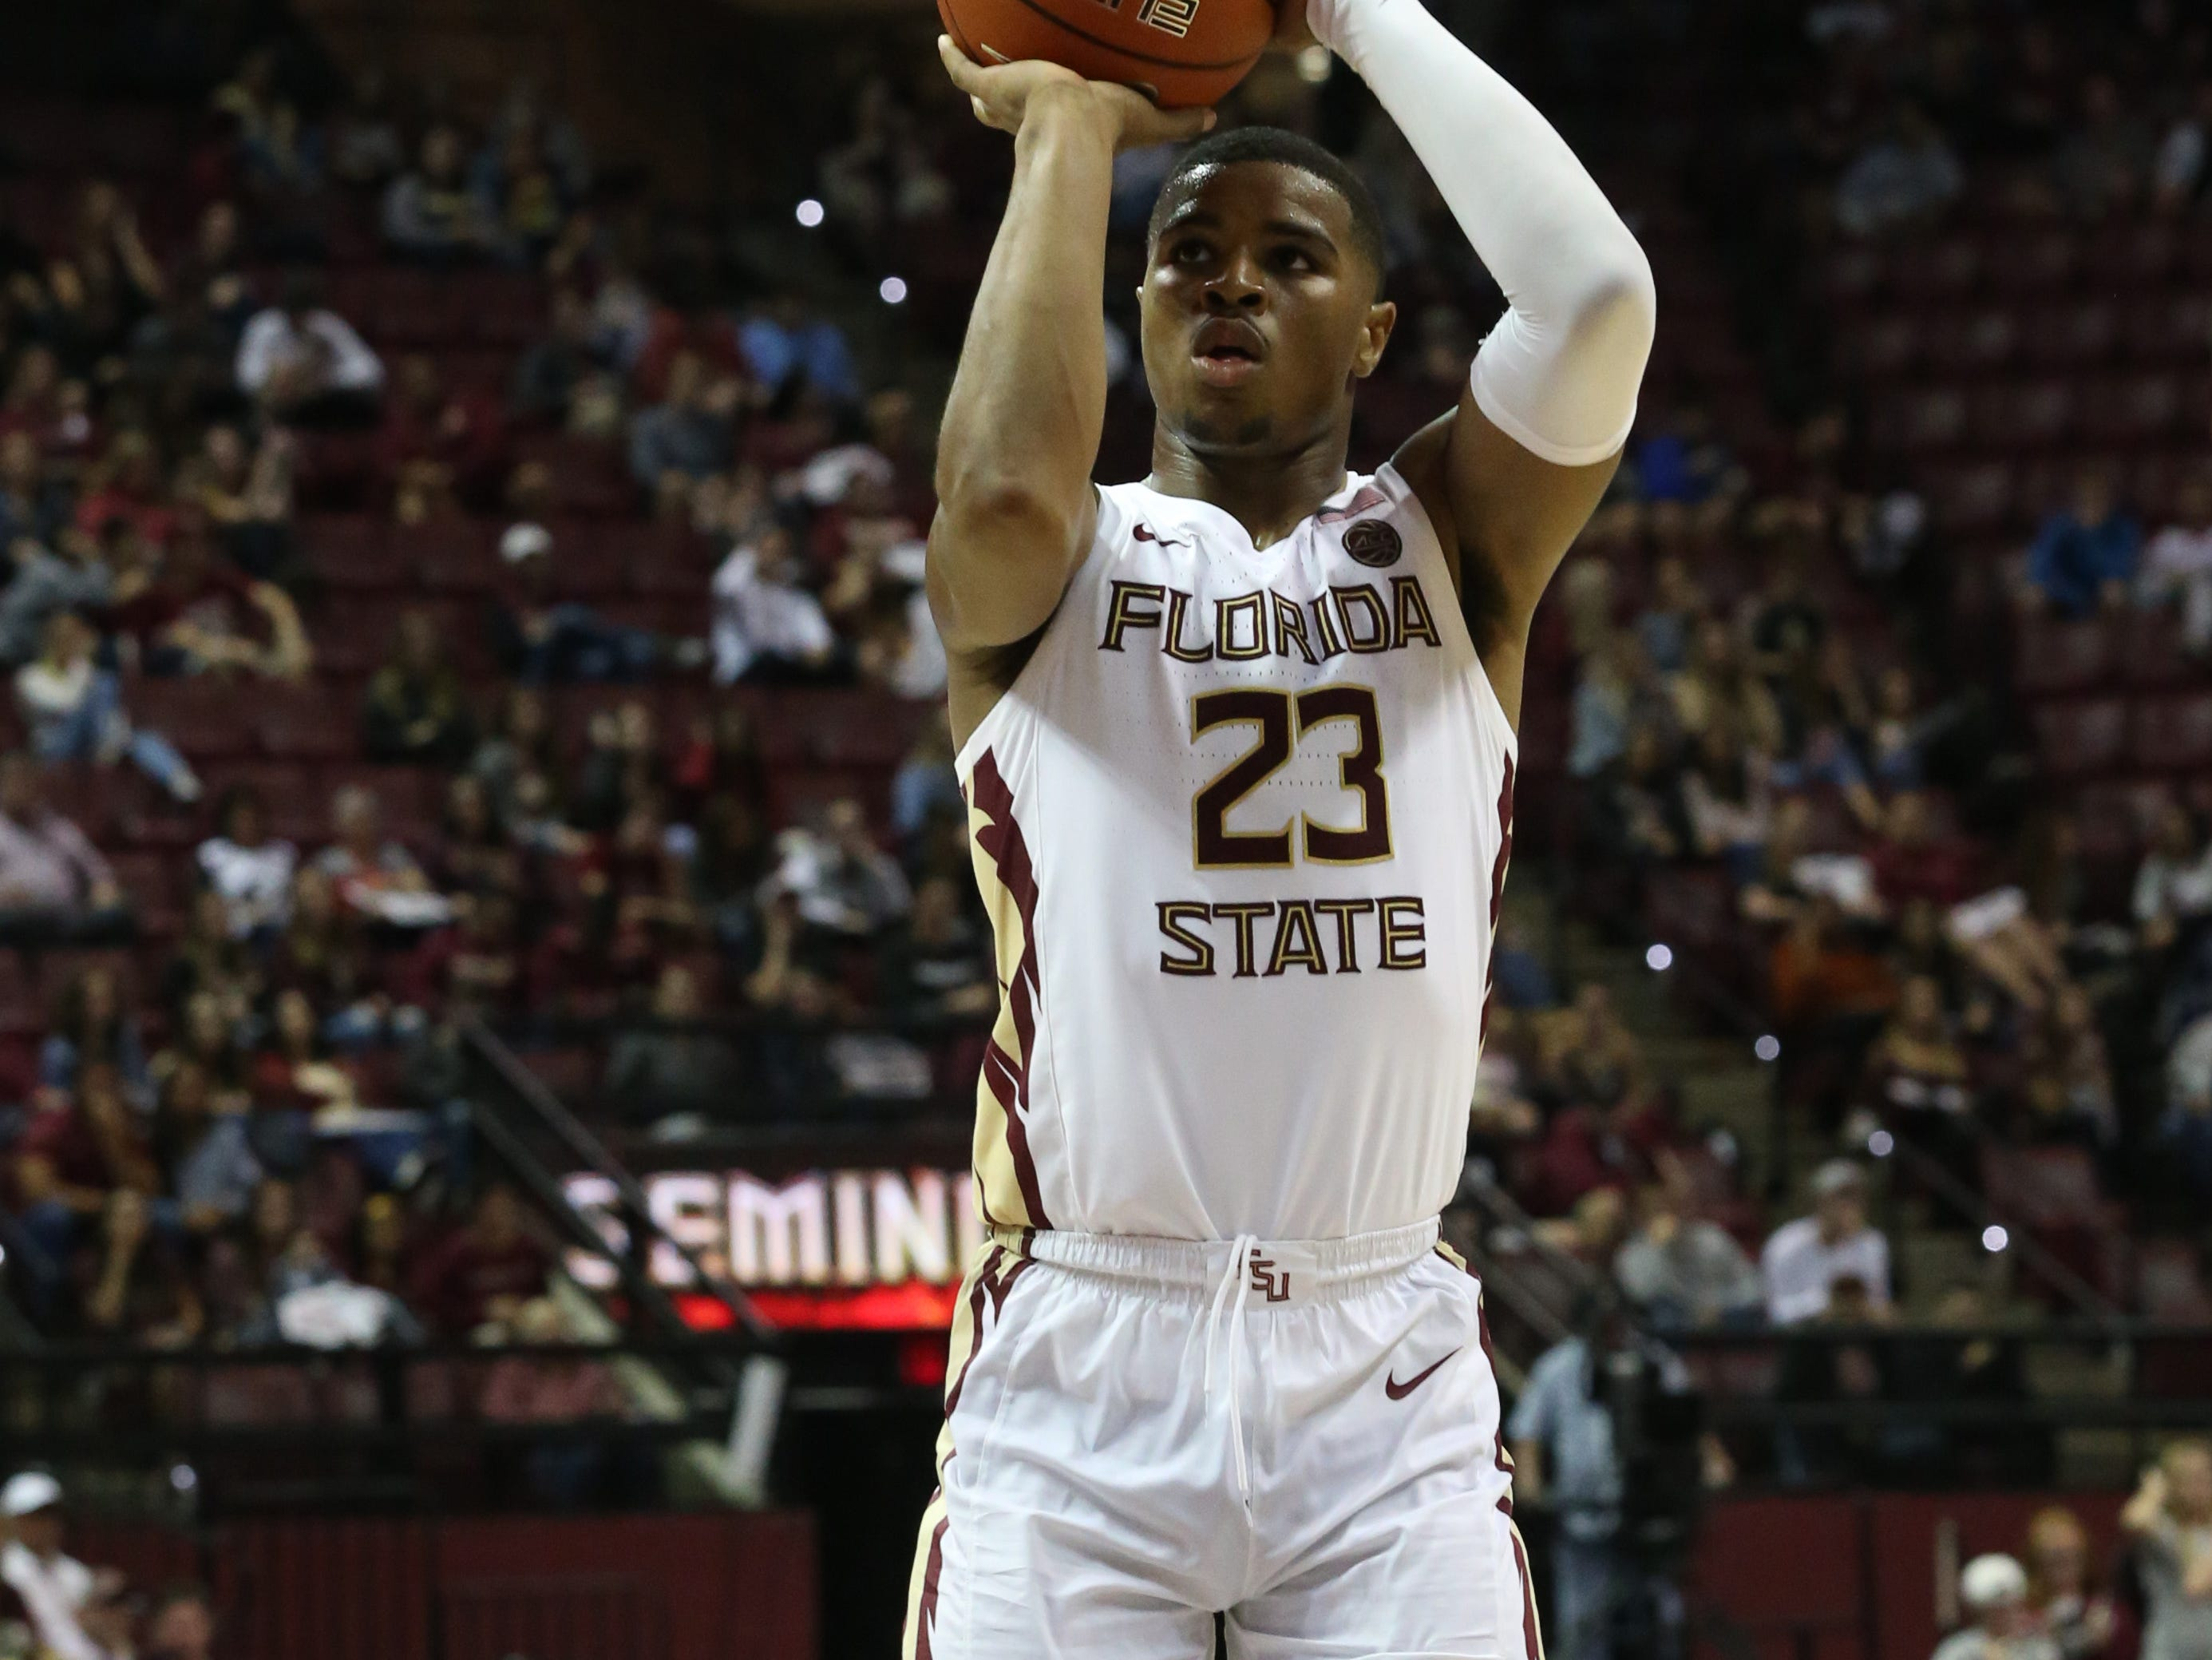 Florida State Seminoles guard M.J. Walker (23) shoots a free throw as the Florida State Seminoles host the Canisius Golden Griffins for basketball in the Tucker Civic Center, Monday, Nov. 19, 2018.